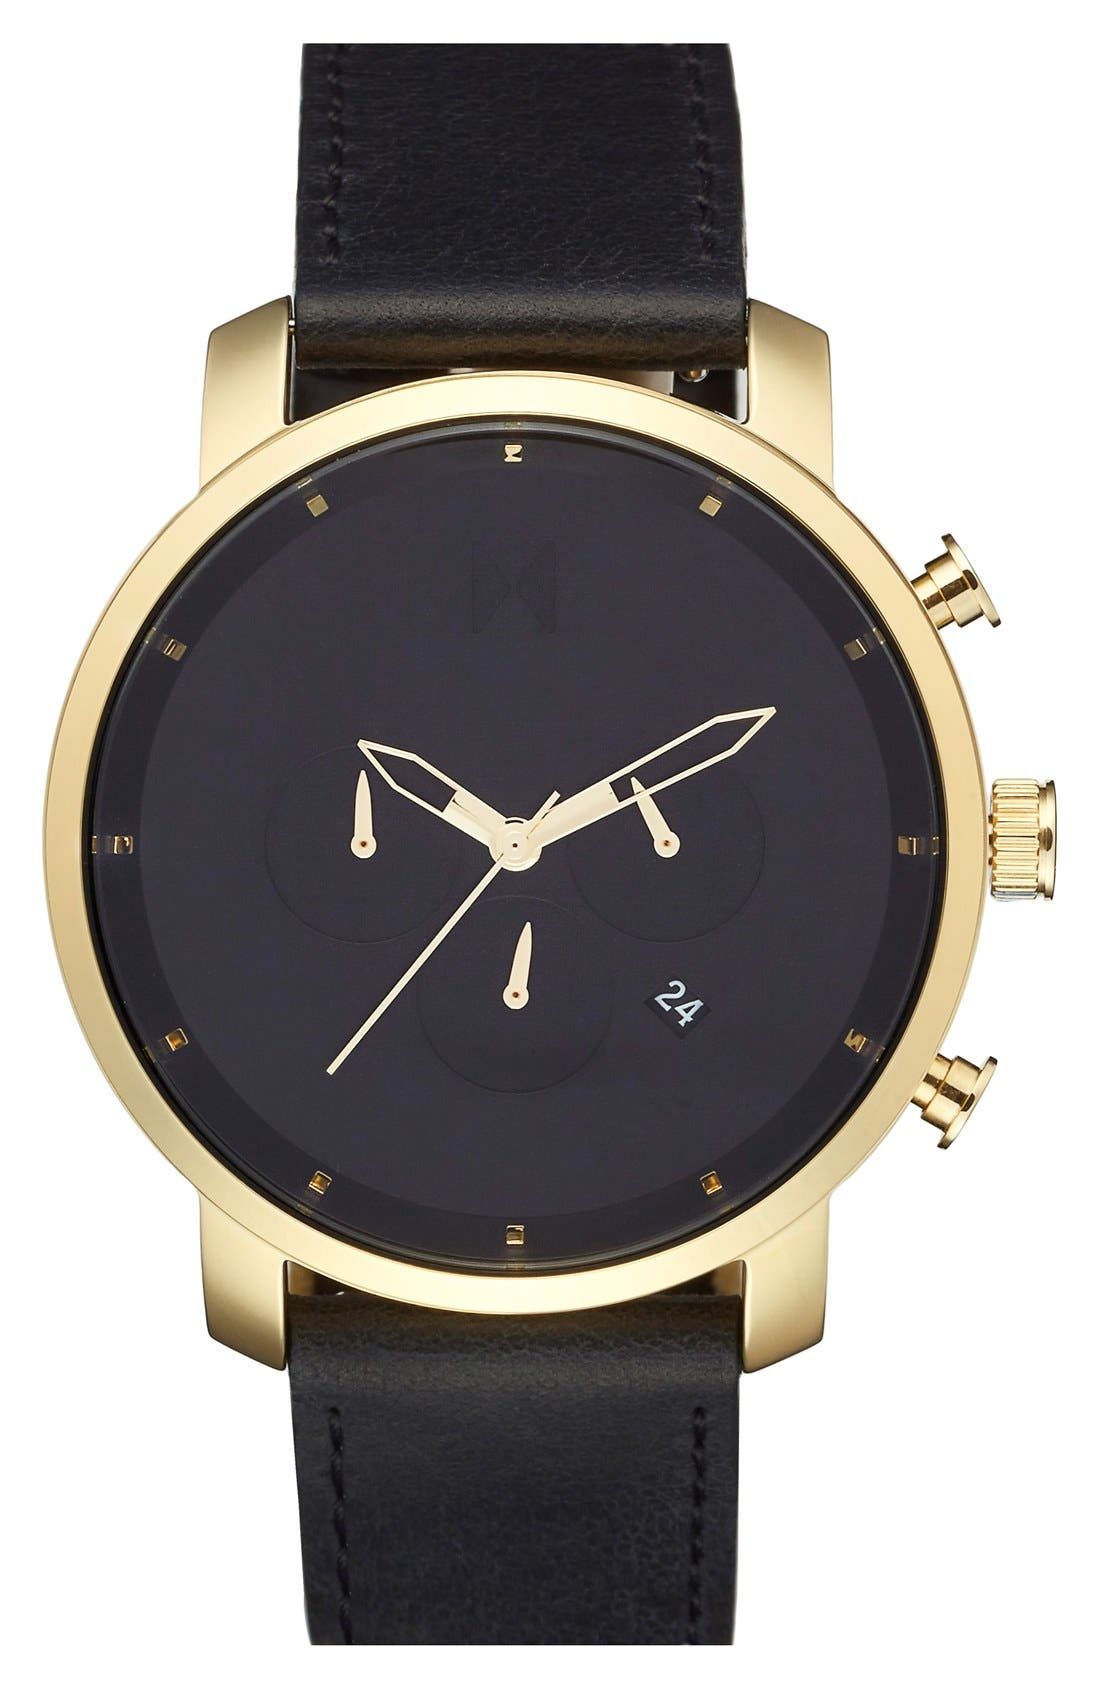 Chronograph Leather Strap Watch, 45Mm in Black/ Gold/ Black